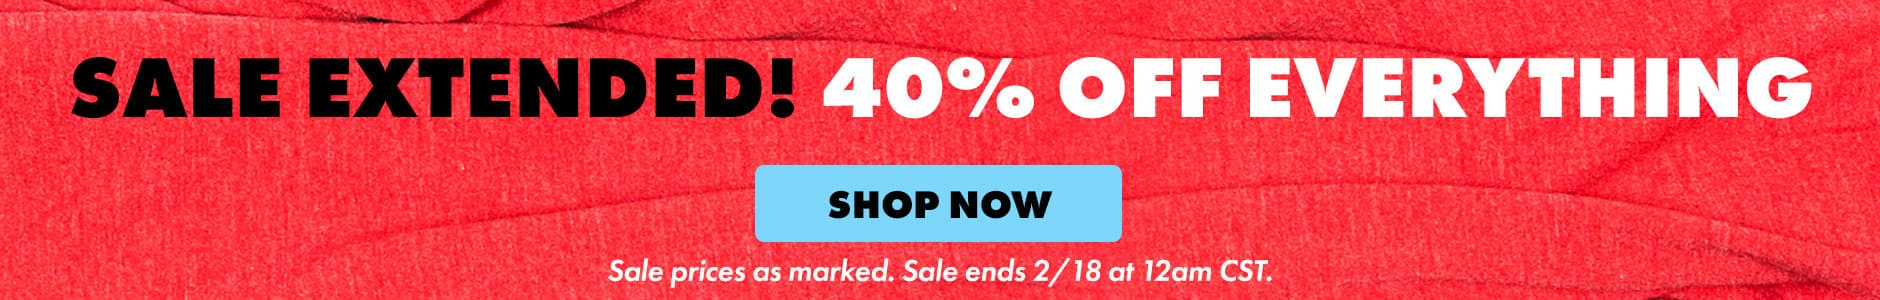 Sale Extended! 40% Off Everything. Shop now. Sale prices as marked. Sale ends 2/18 at 12am CST.